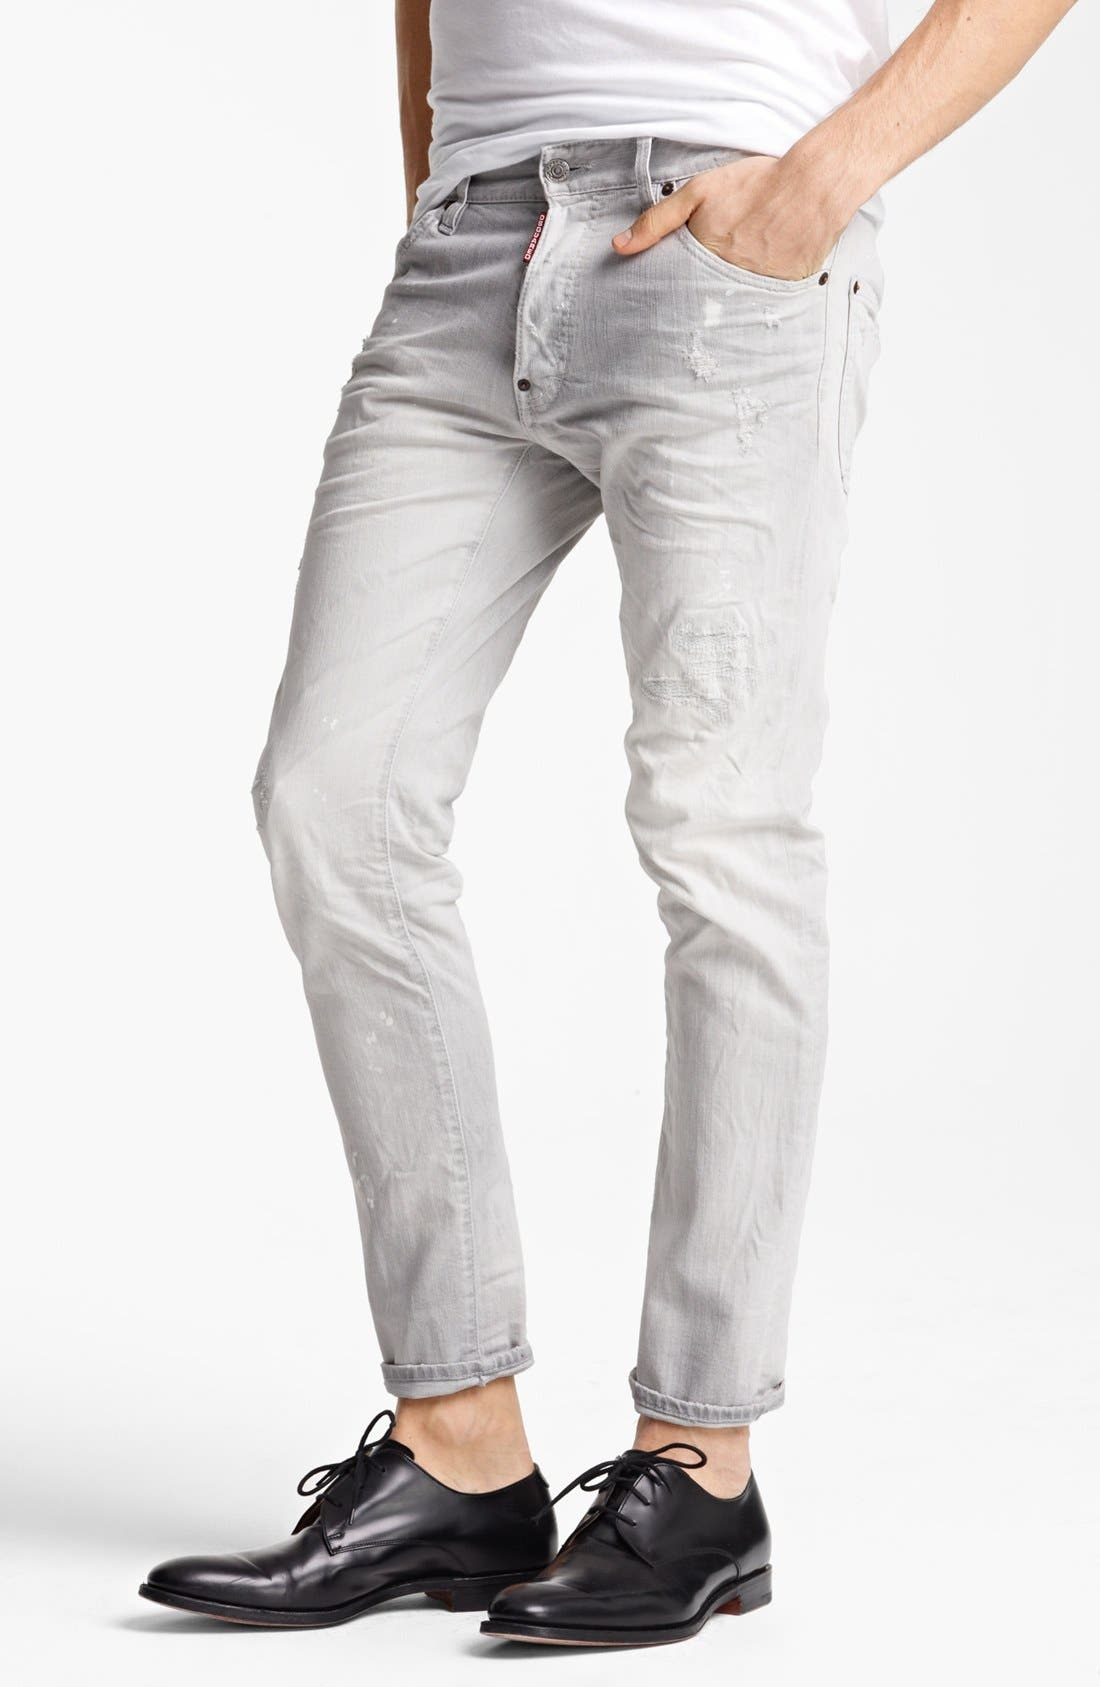 Alternate Image 1 Selected - Dsquared2 'Cool Guy' Skinny Fit Jeans (Grey)